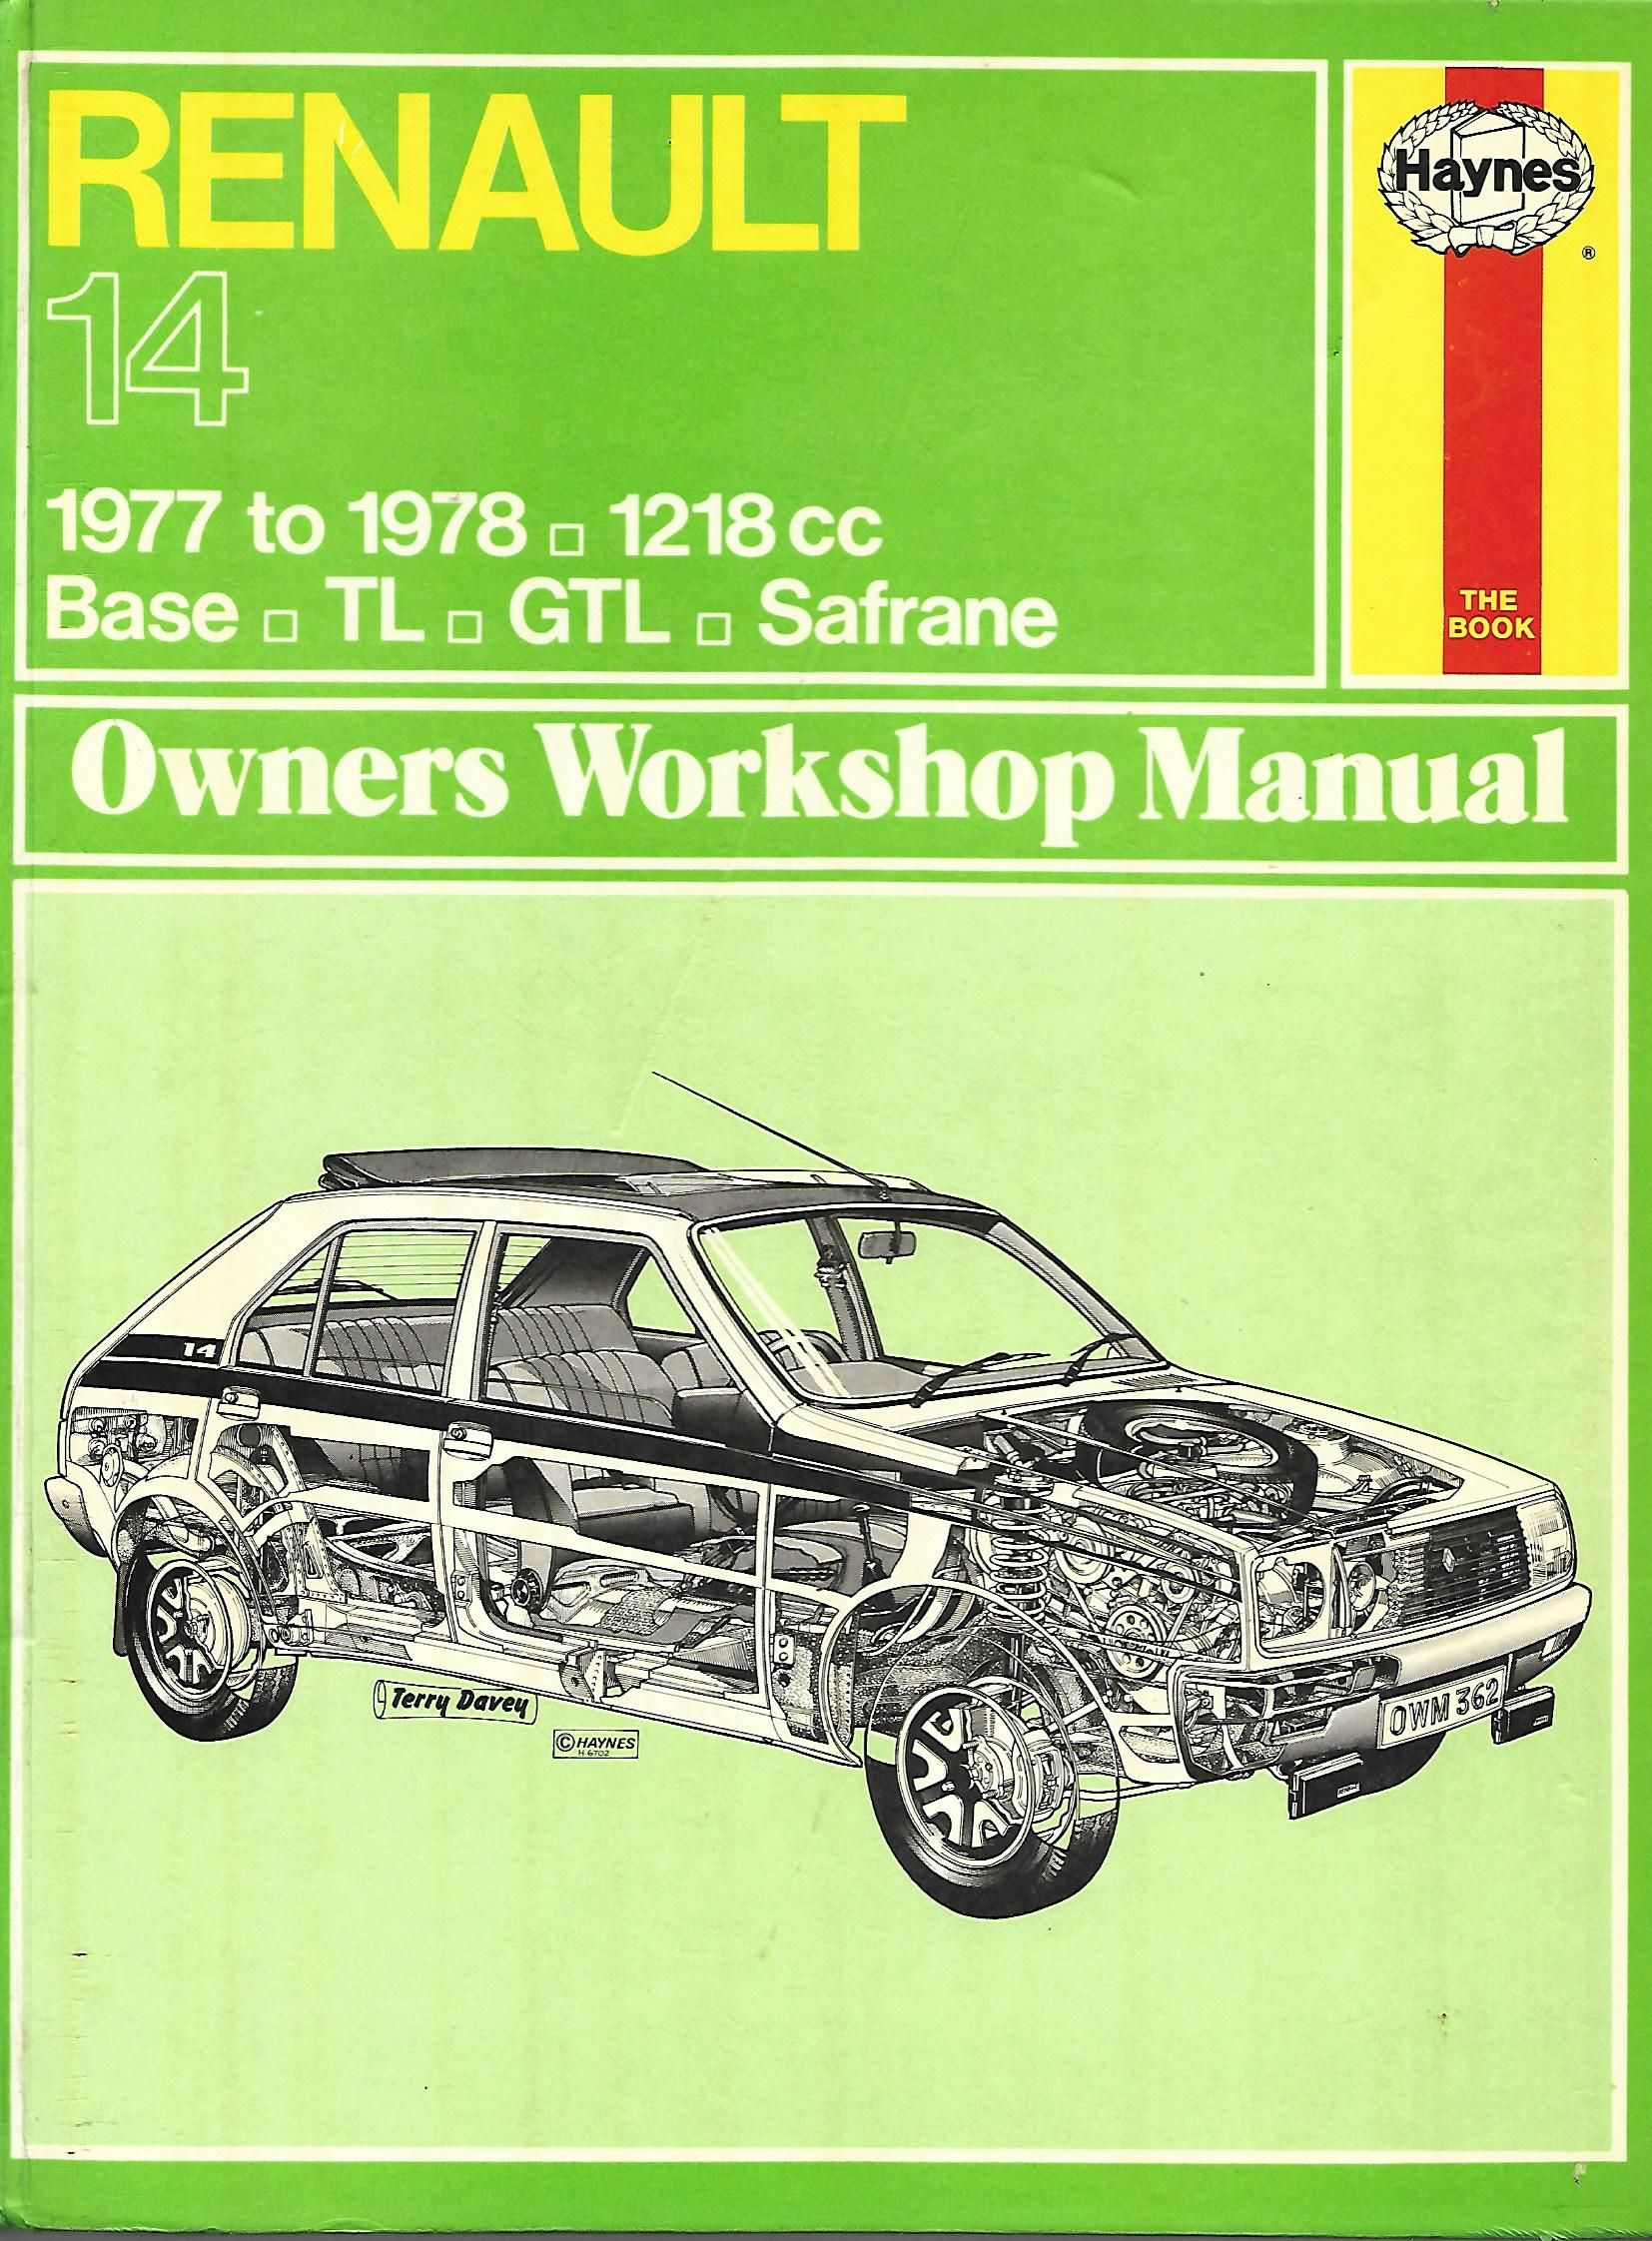 Haynes manual for citroen zx diesel 1991 to 1993 j to l in vehicle parts accessories car manuals literature citro n ebay motors pinterest